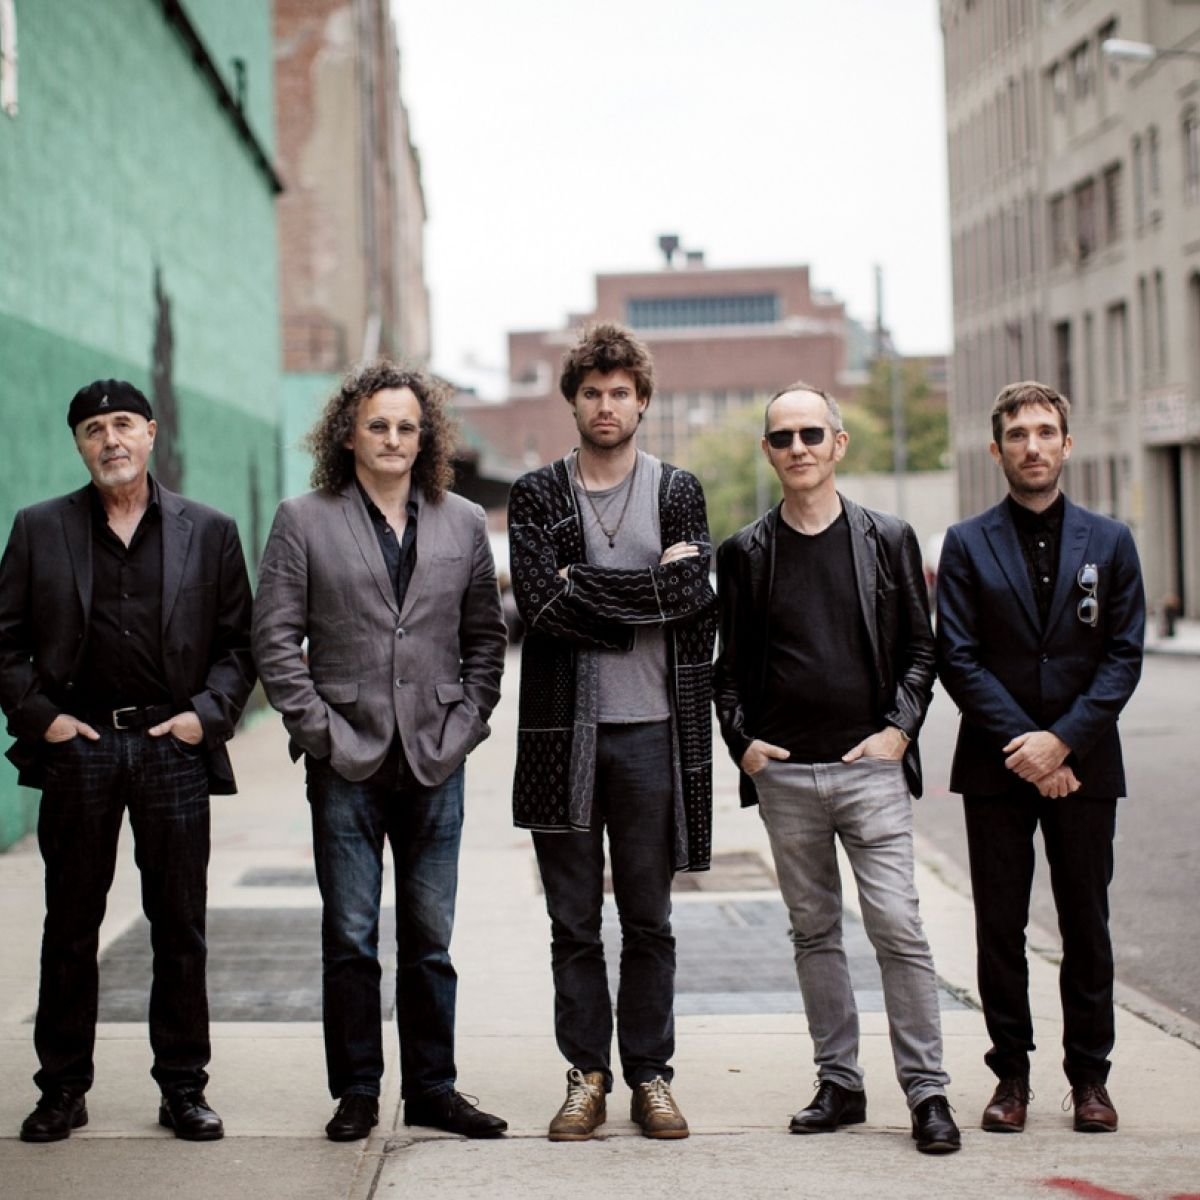 The members of the gloaming standing in a line, outside.